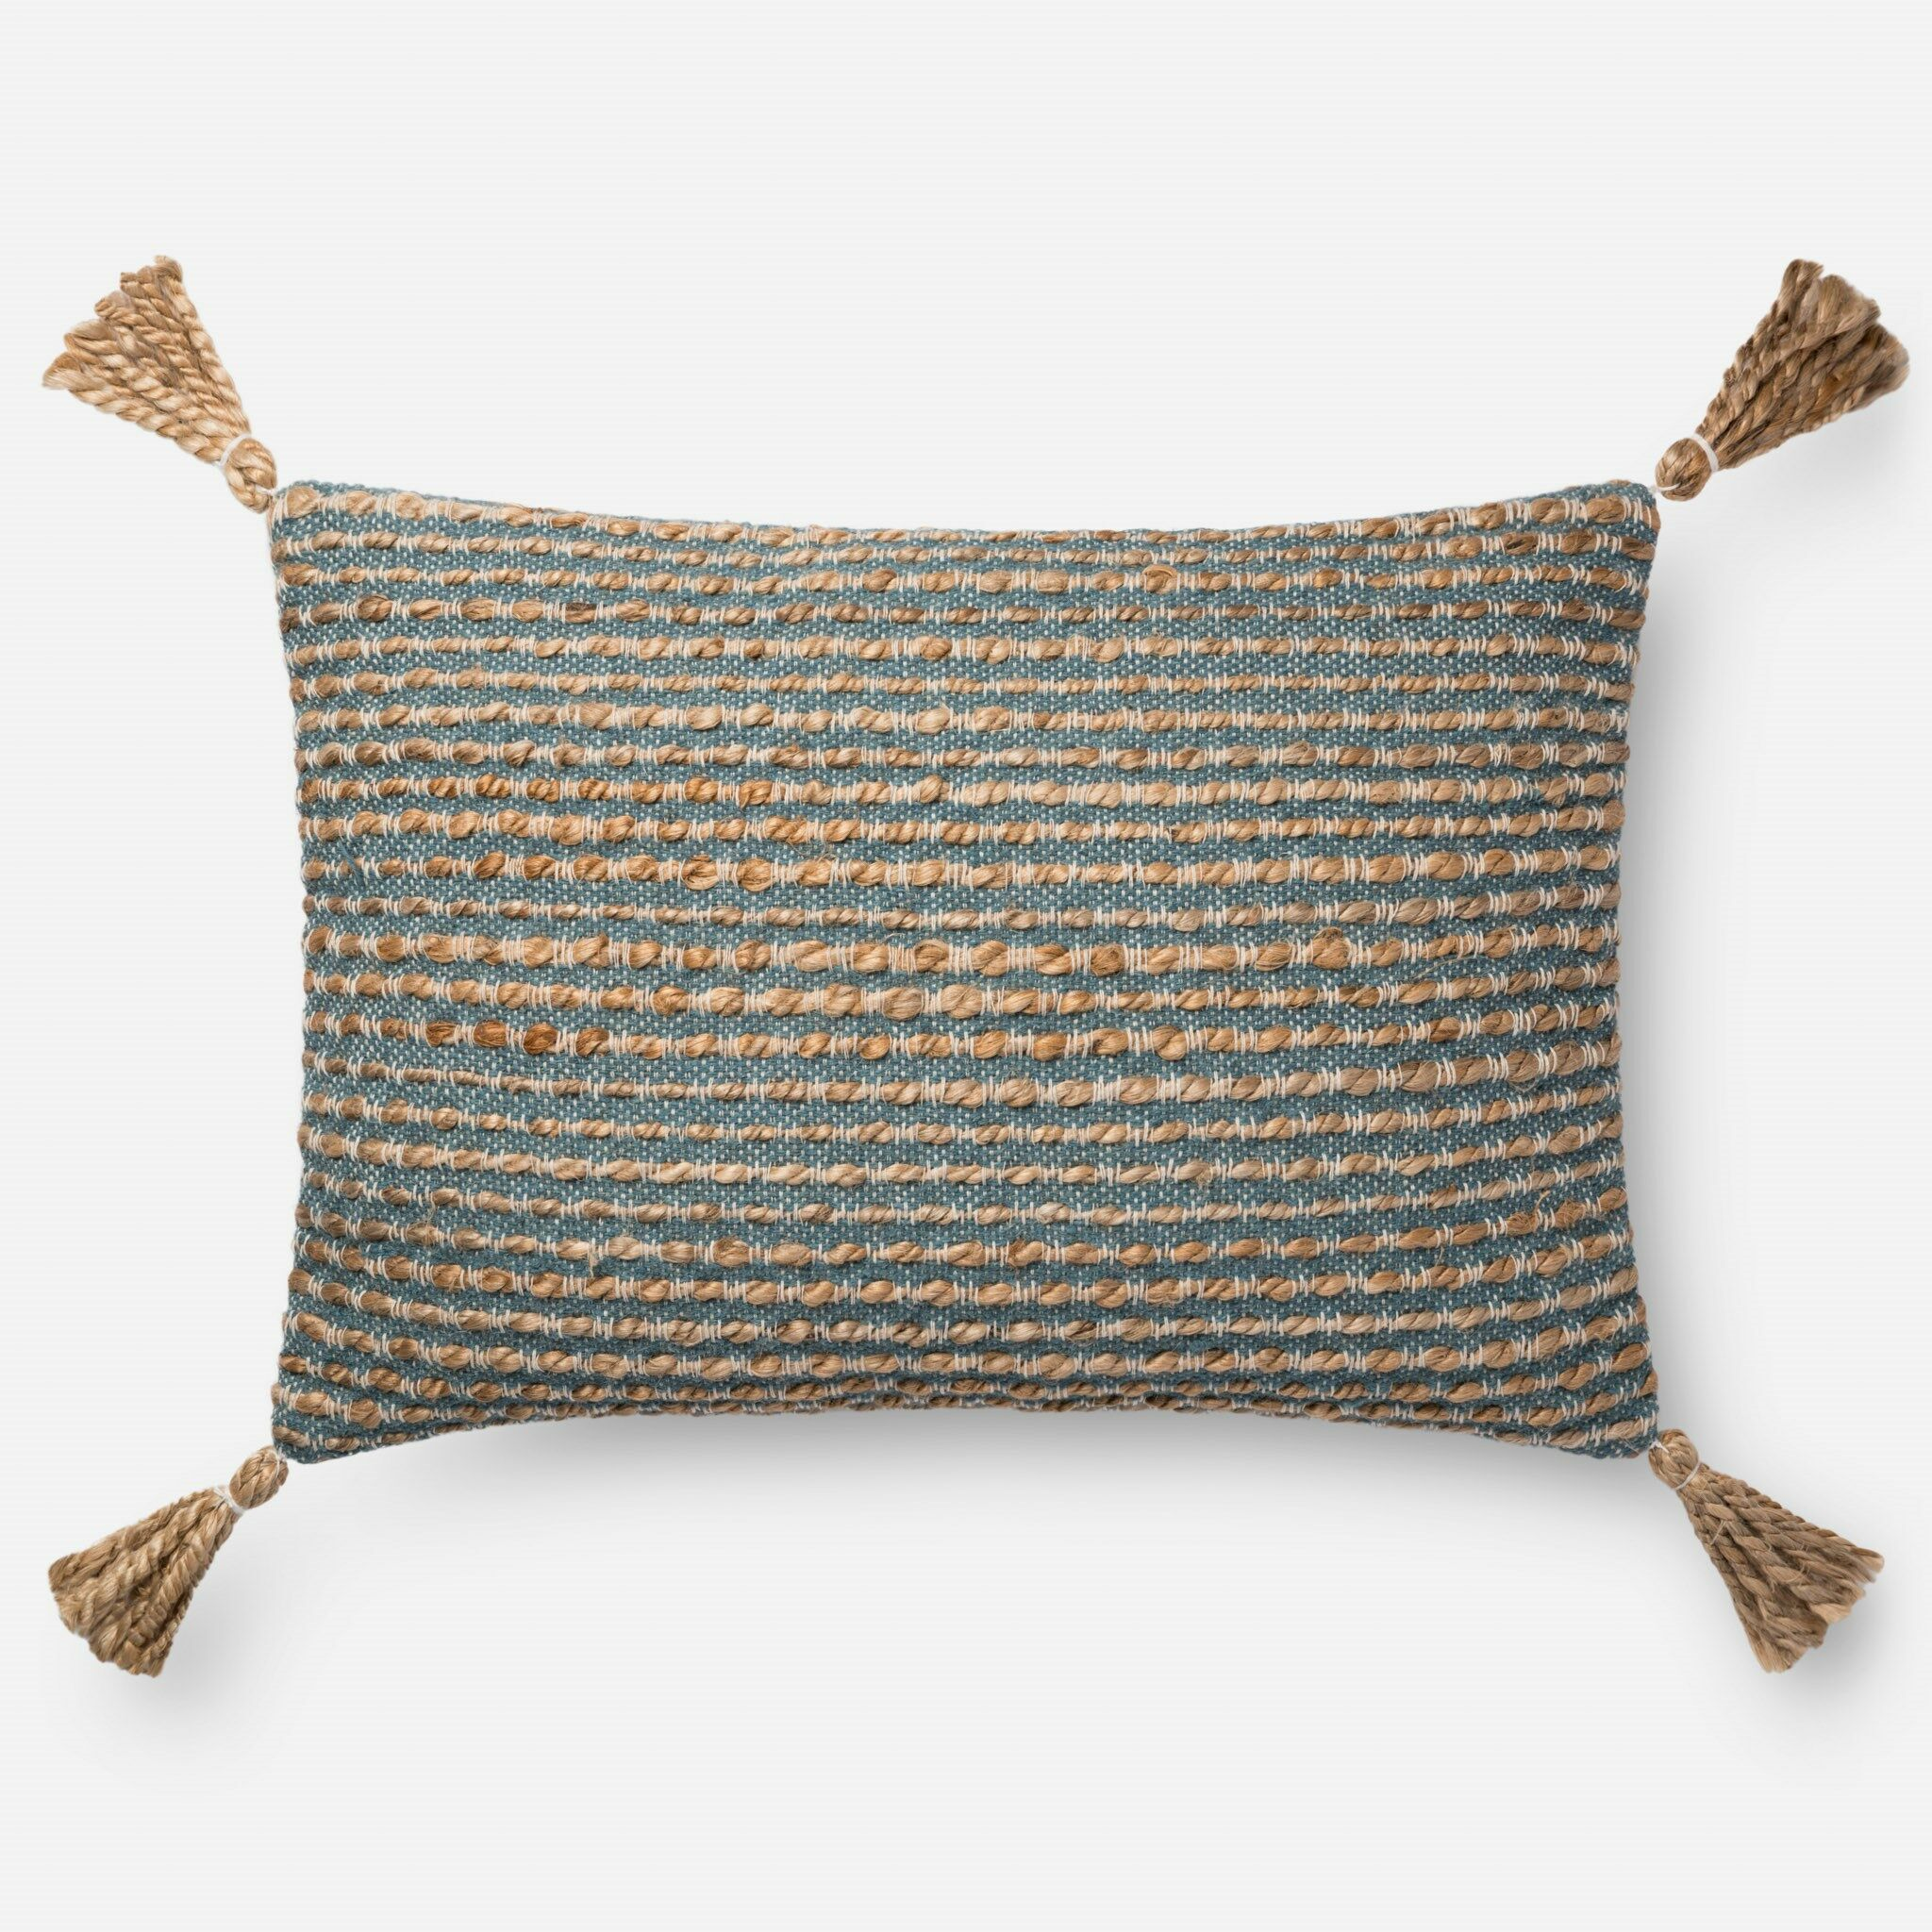 Steiner Pillow Fill Material: Down/Feather